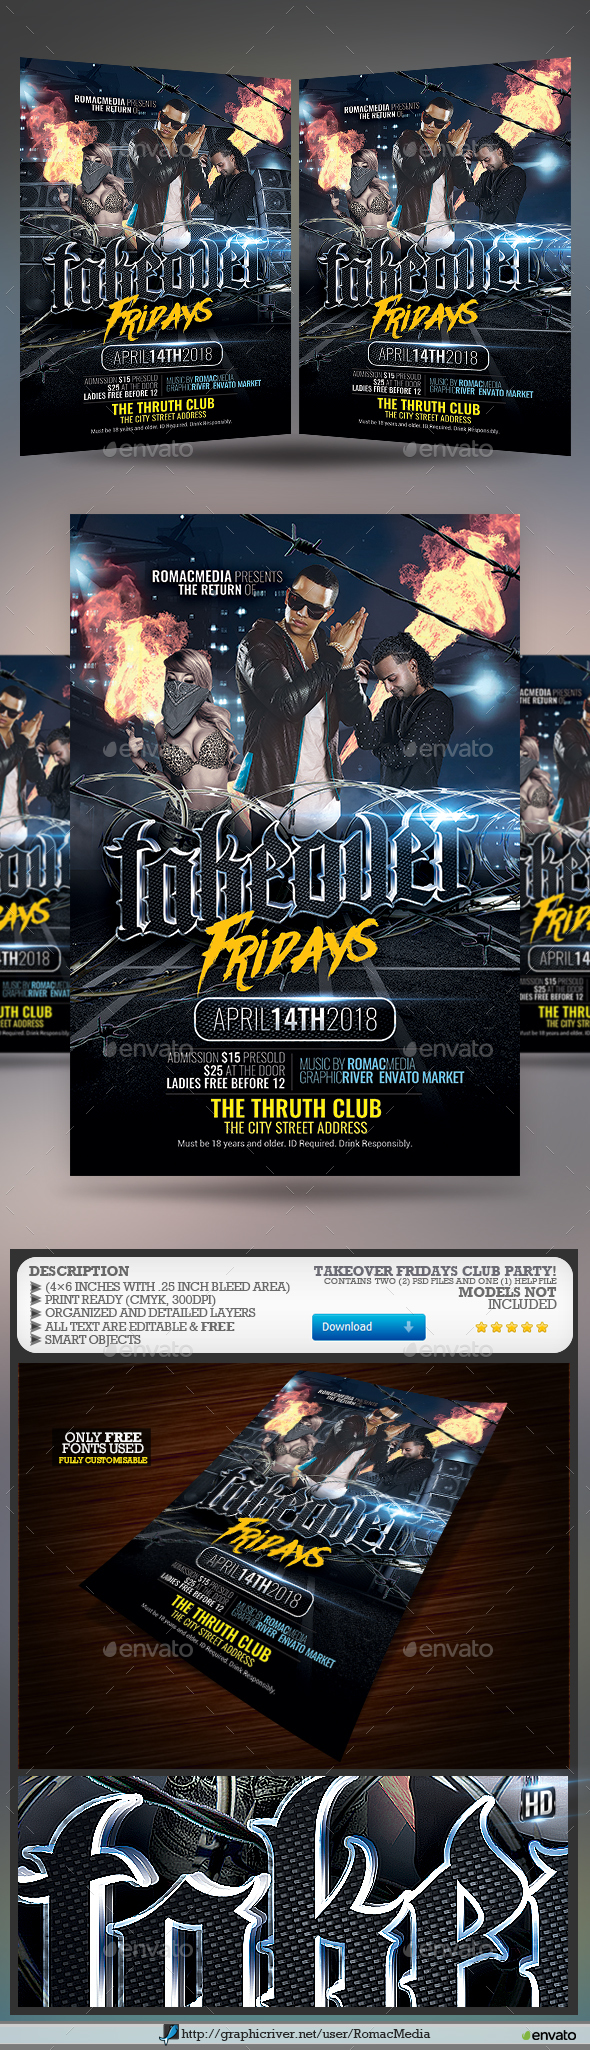 Takeover Rap Flyer - Clubs & Parties Events